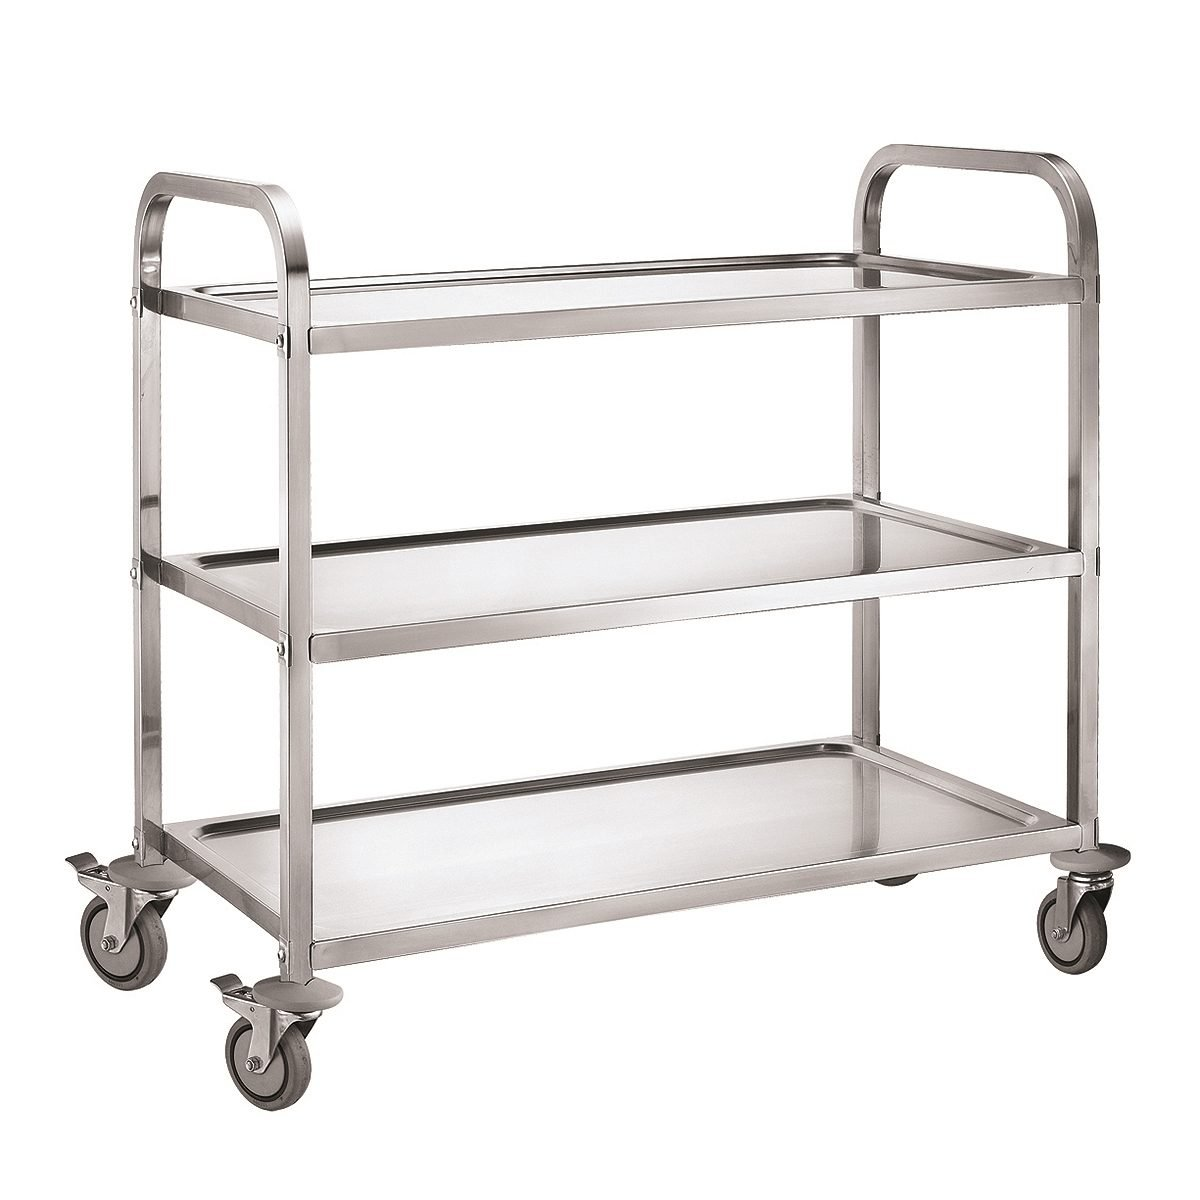 New Imettos 301002 3 Tier Service Trolley For Sale